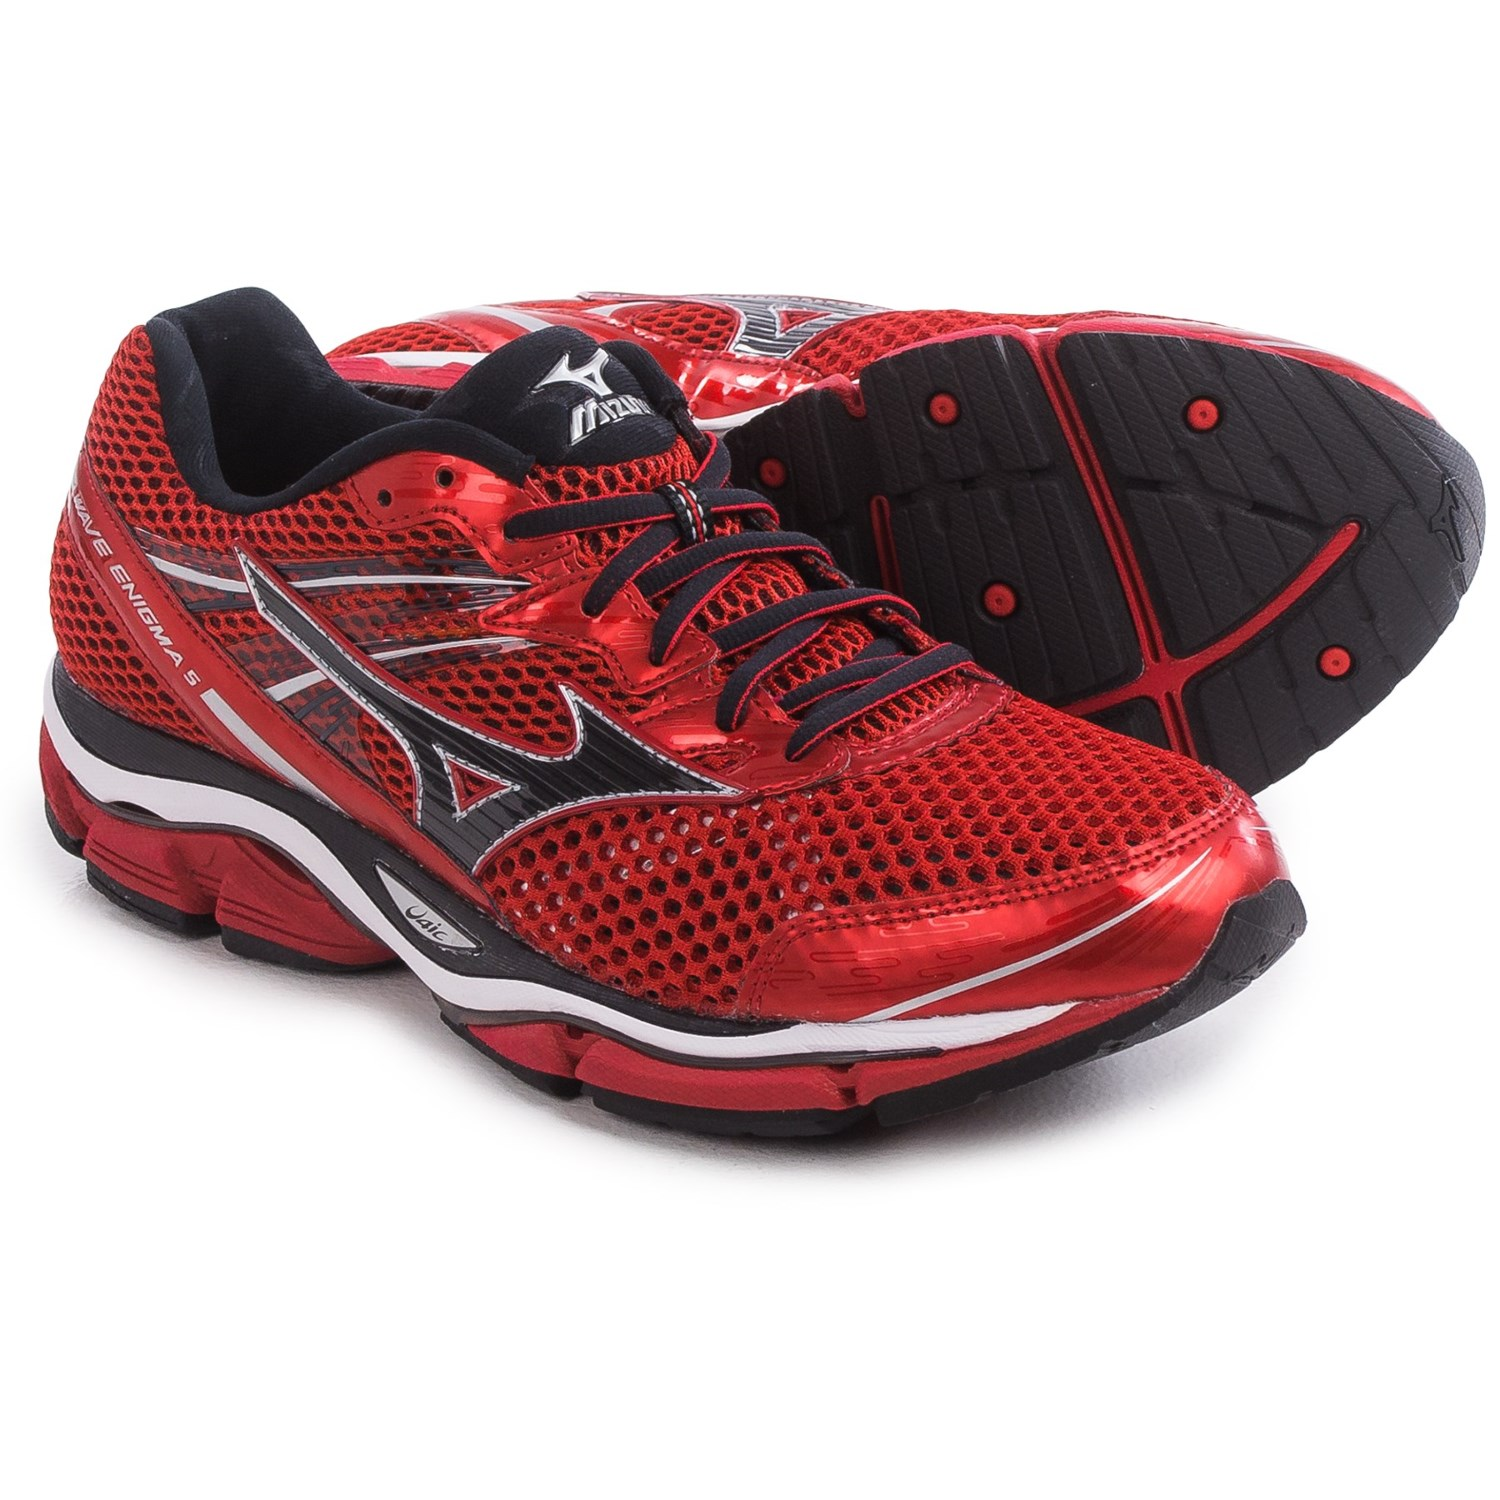 Mizuno running shoes for men